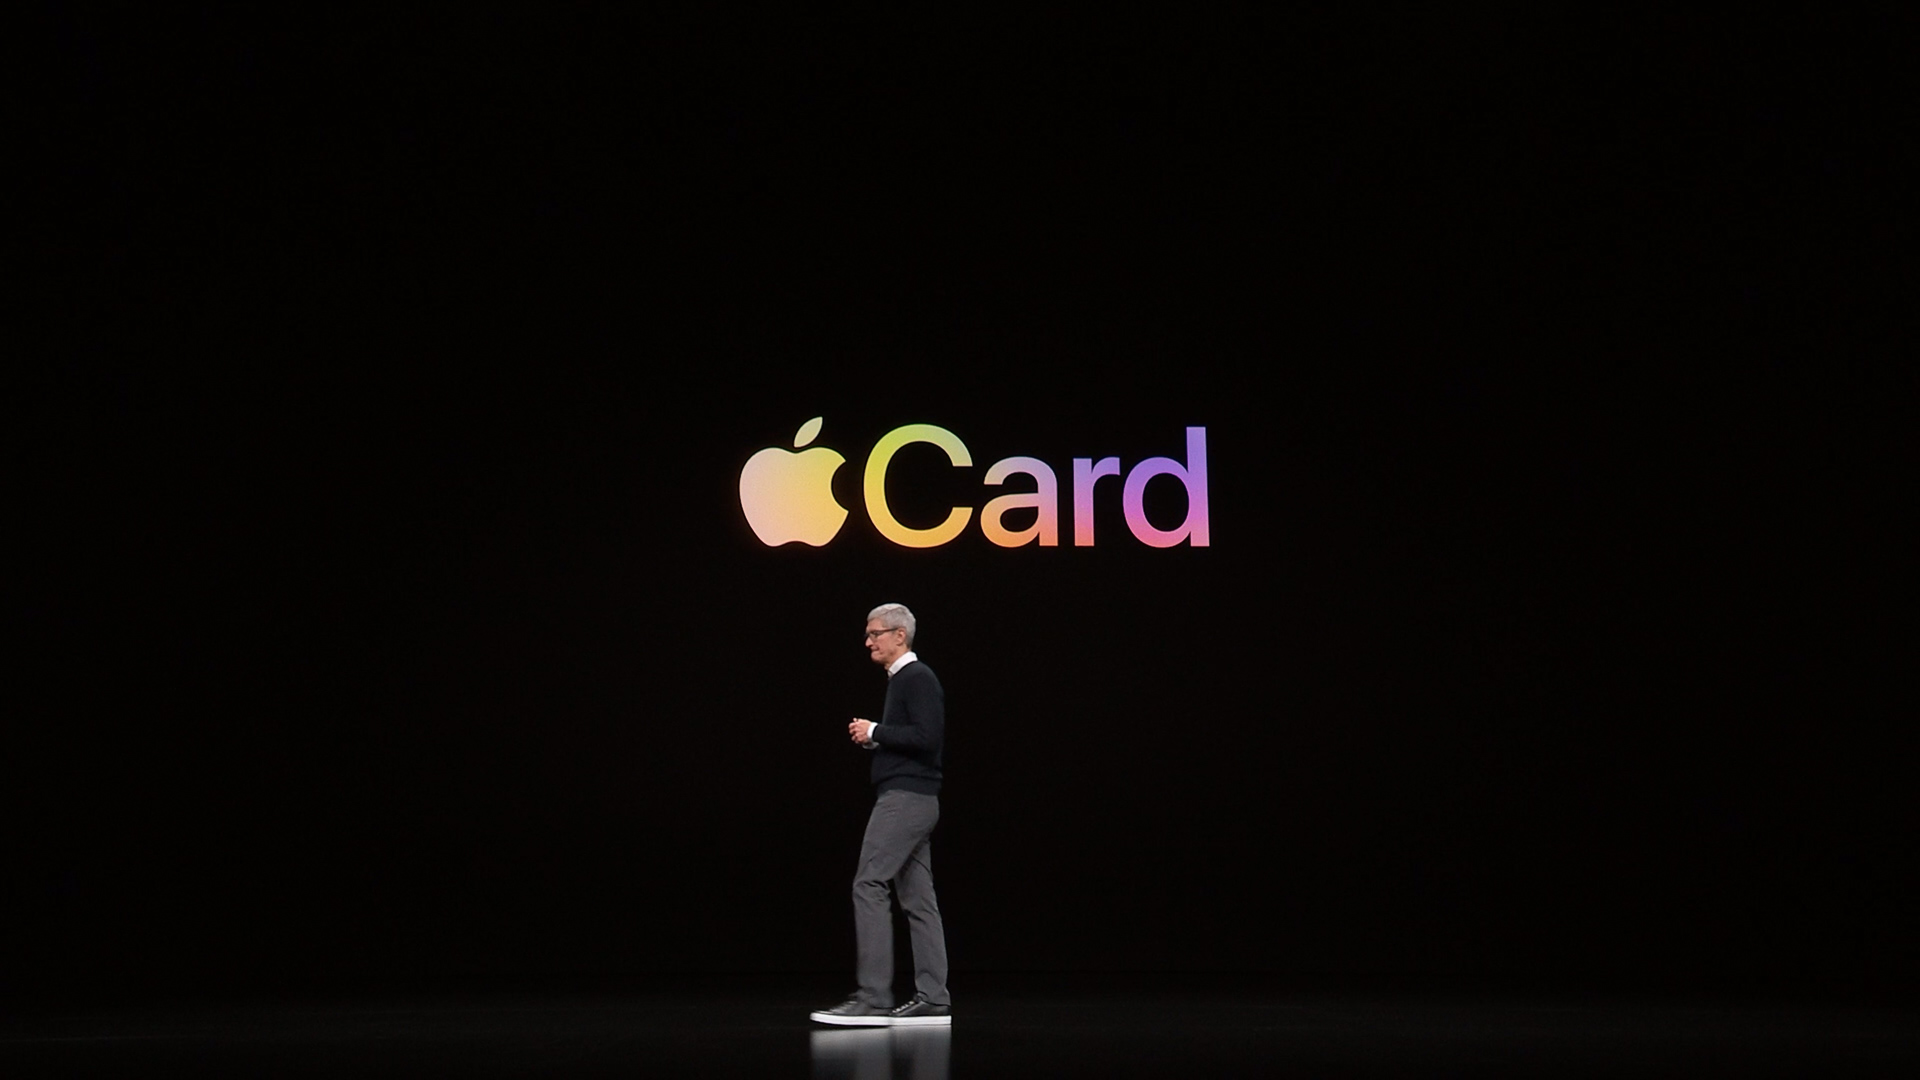 Apple Card vorgestellt, Apple Service, Apple Special Event, Daily Rewards, Wie funktioniert die Apple Card, Apple Card in Deutschland, Apple Card verstecke kosten, Hack4Life, Fabian Geissler